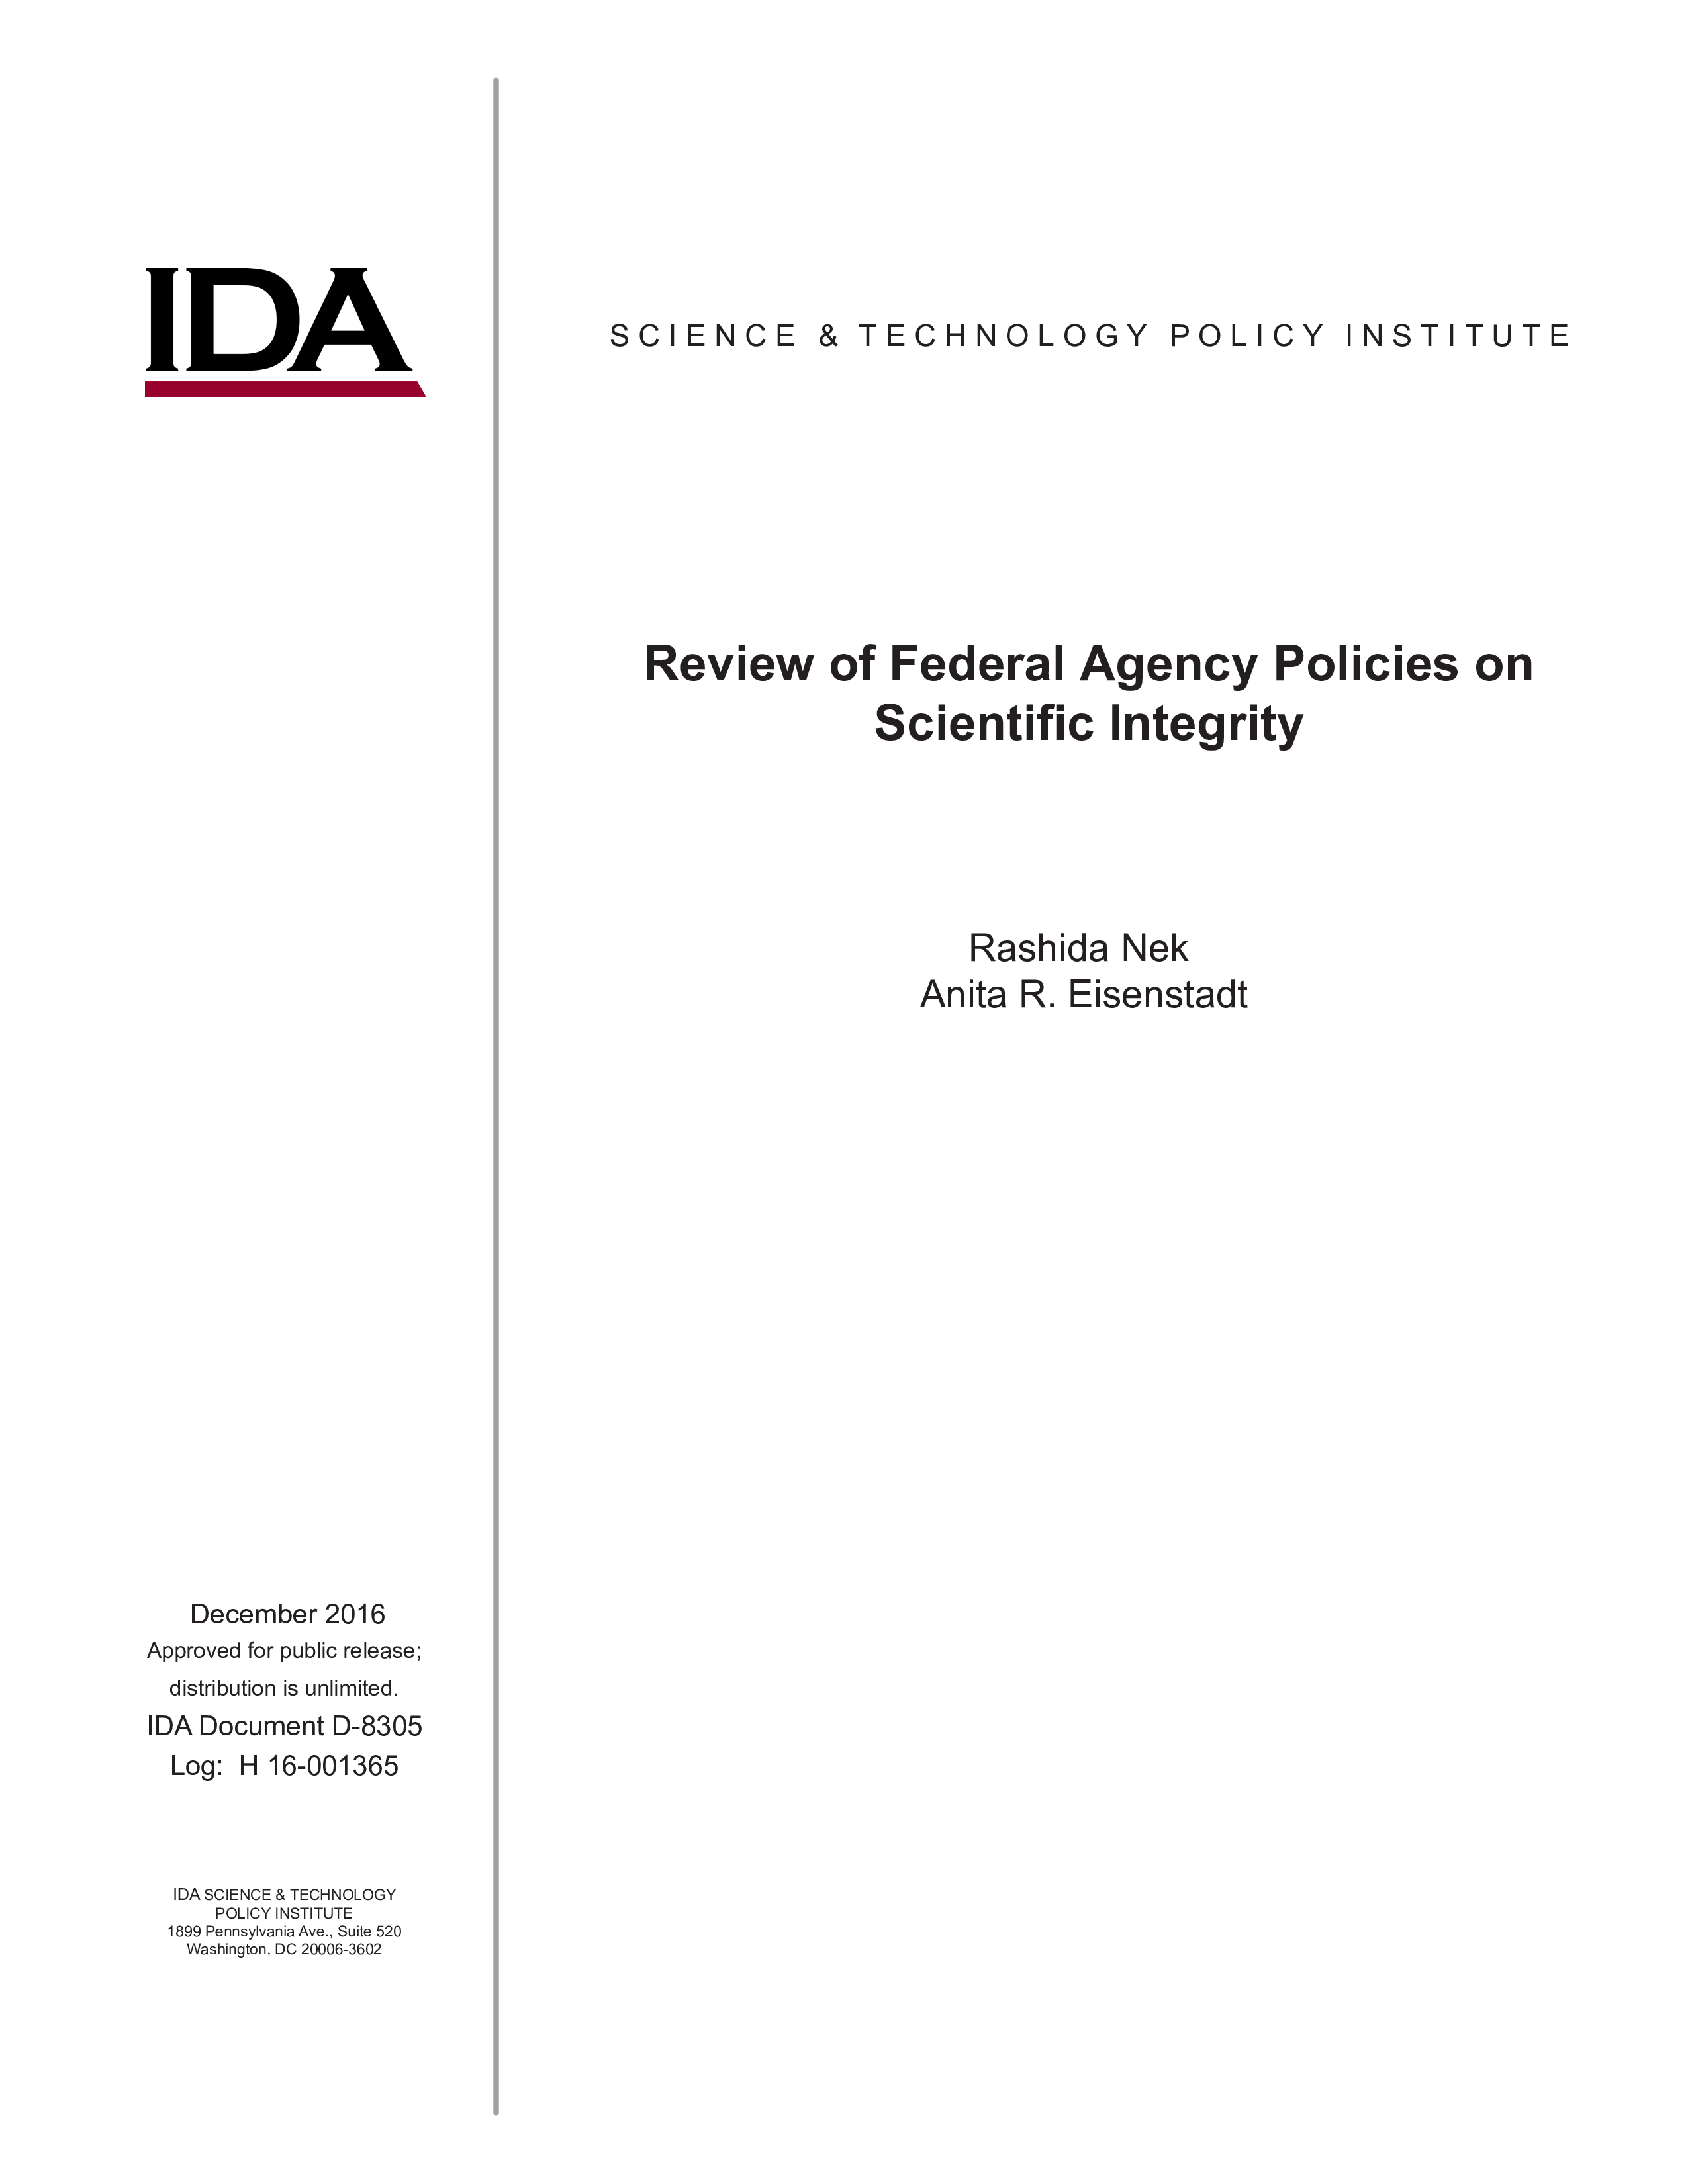 Review of Federal Agency Policies on Scientific Integrity